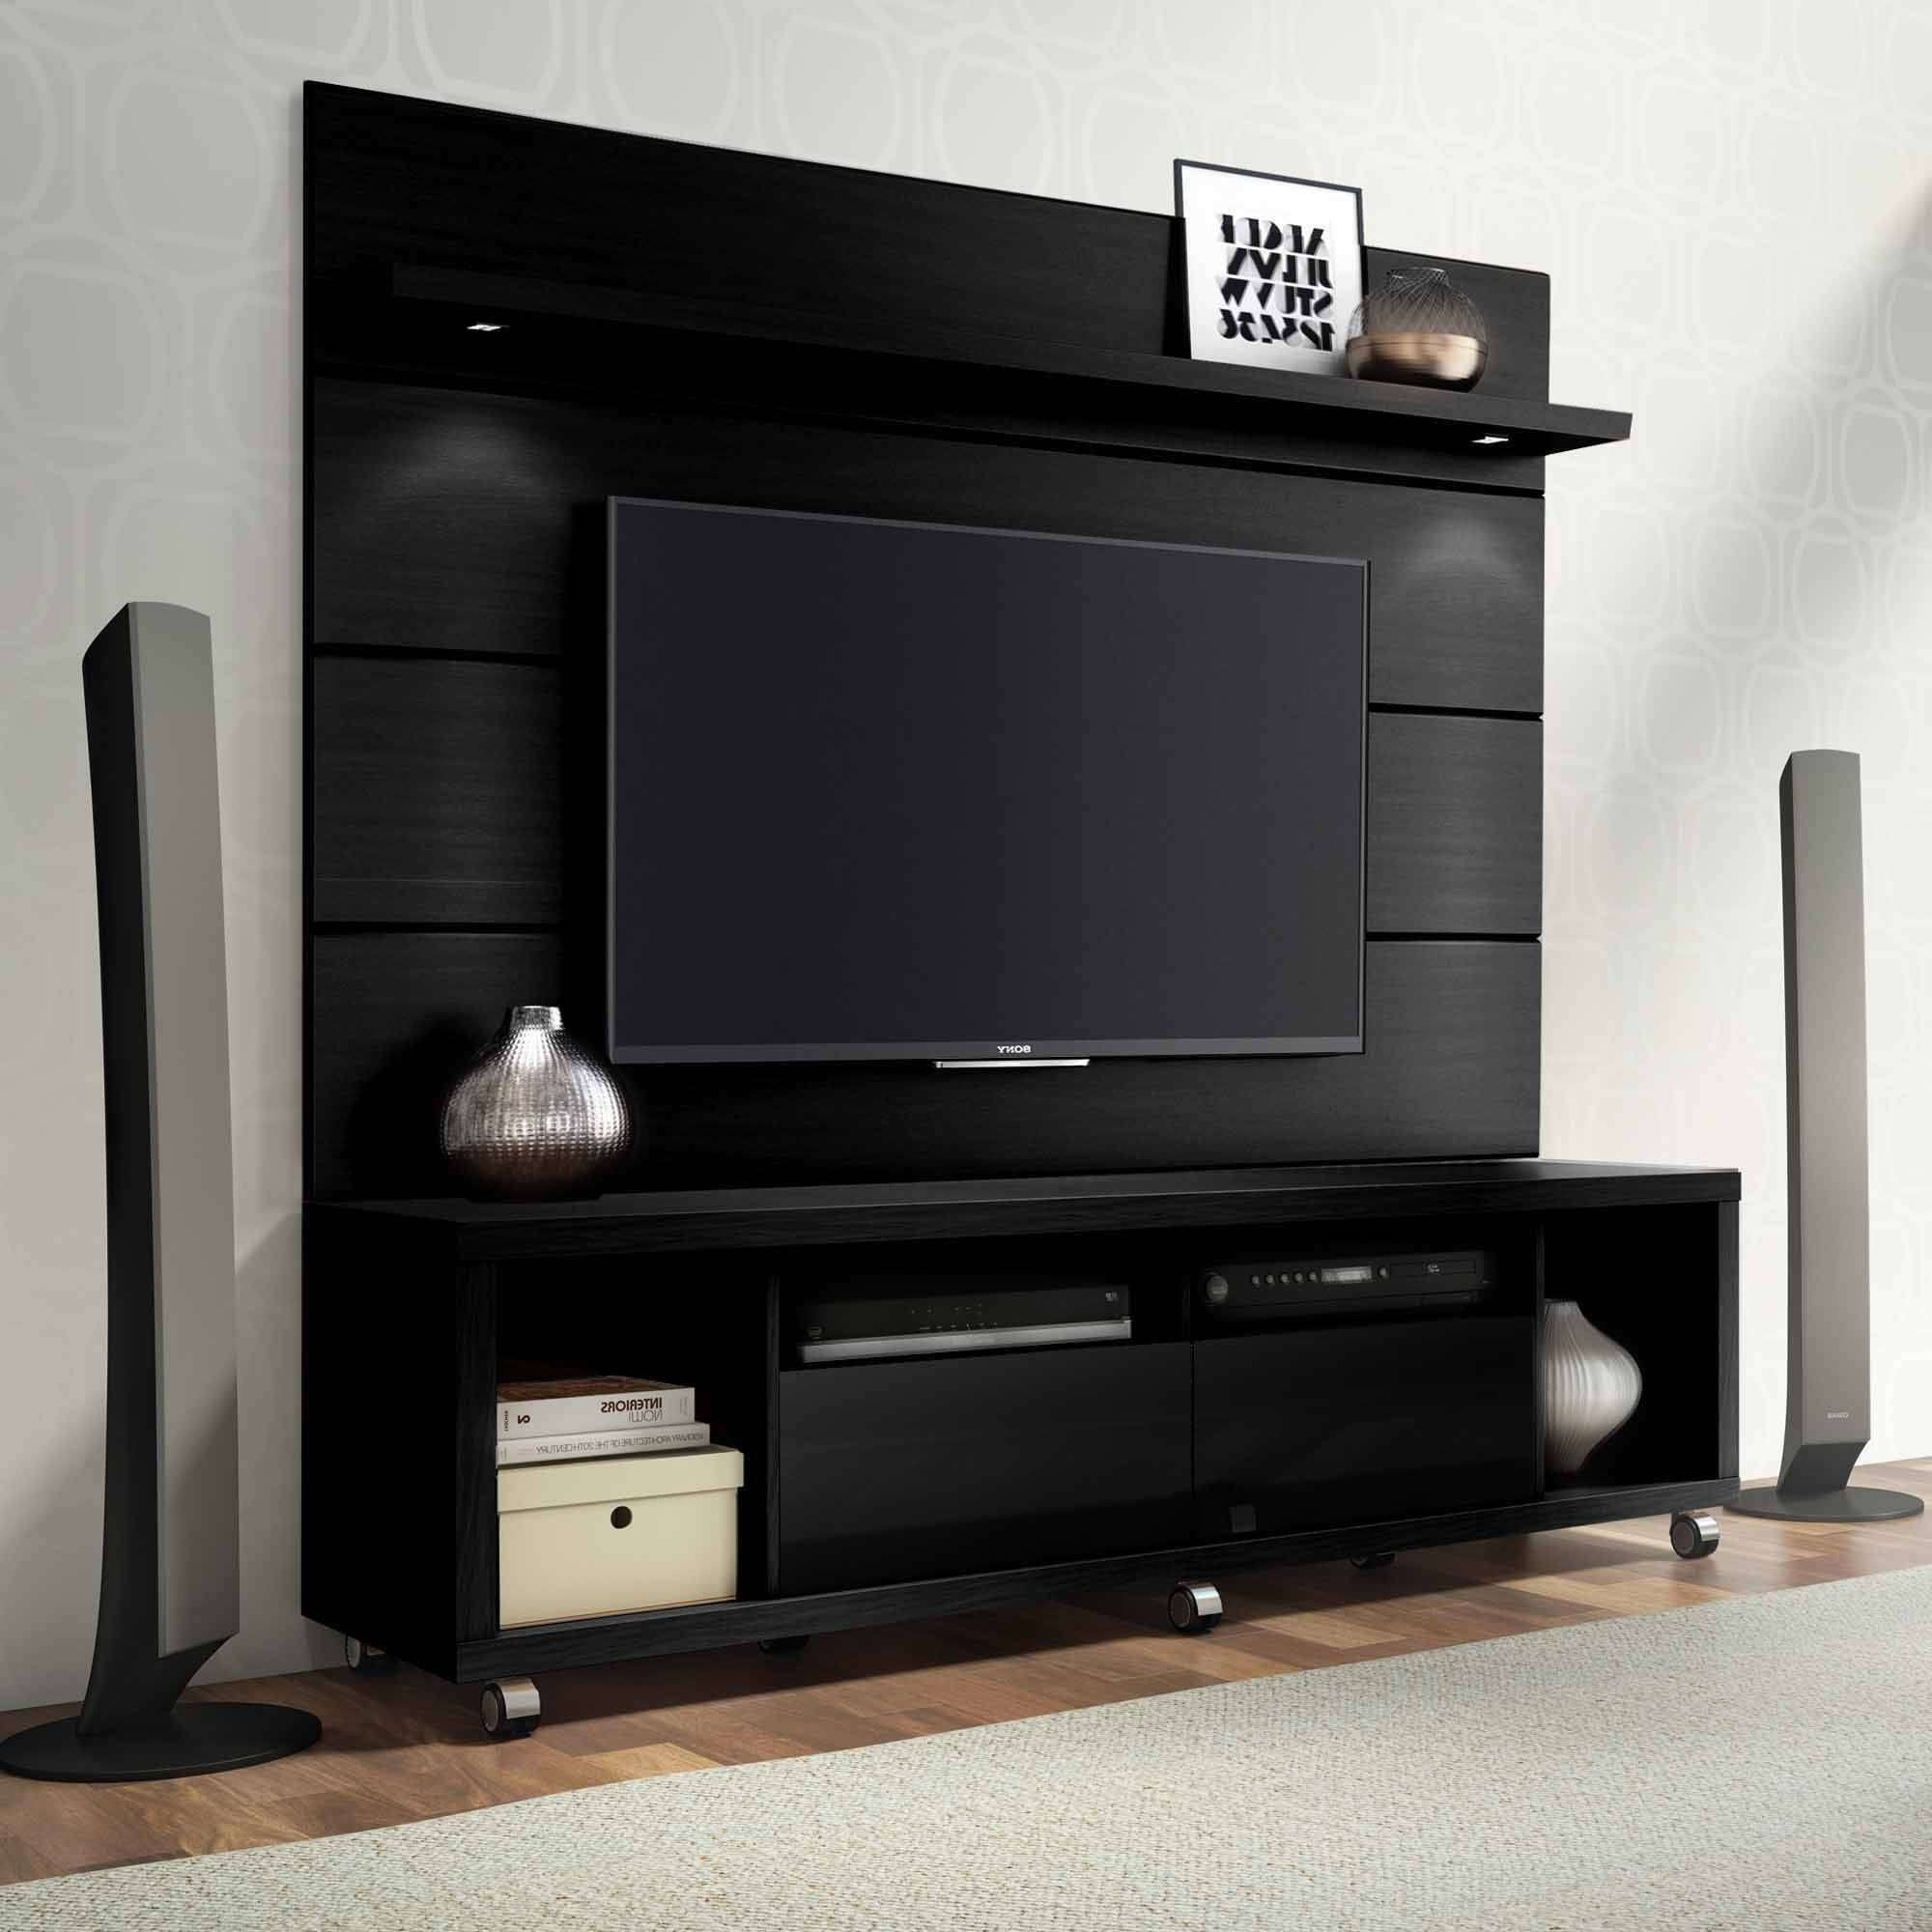 Manhattan Comfort Cabrini Tv Stand And Floating Wall Tv Panel With For Tv Stands With Led Lights (View 7 of 15)